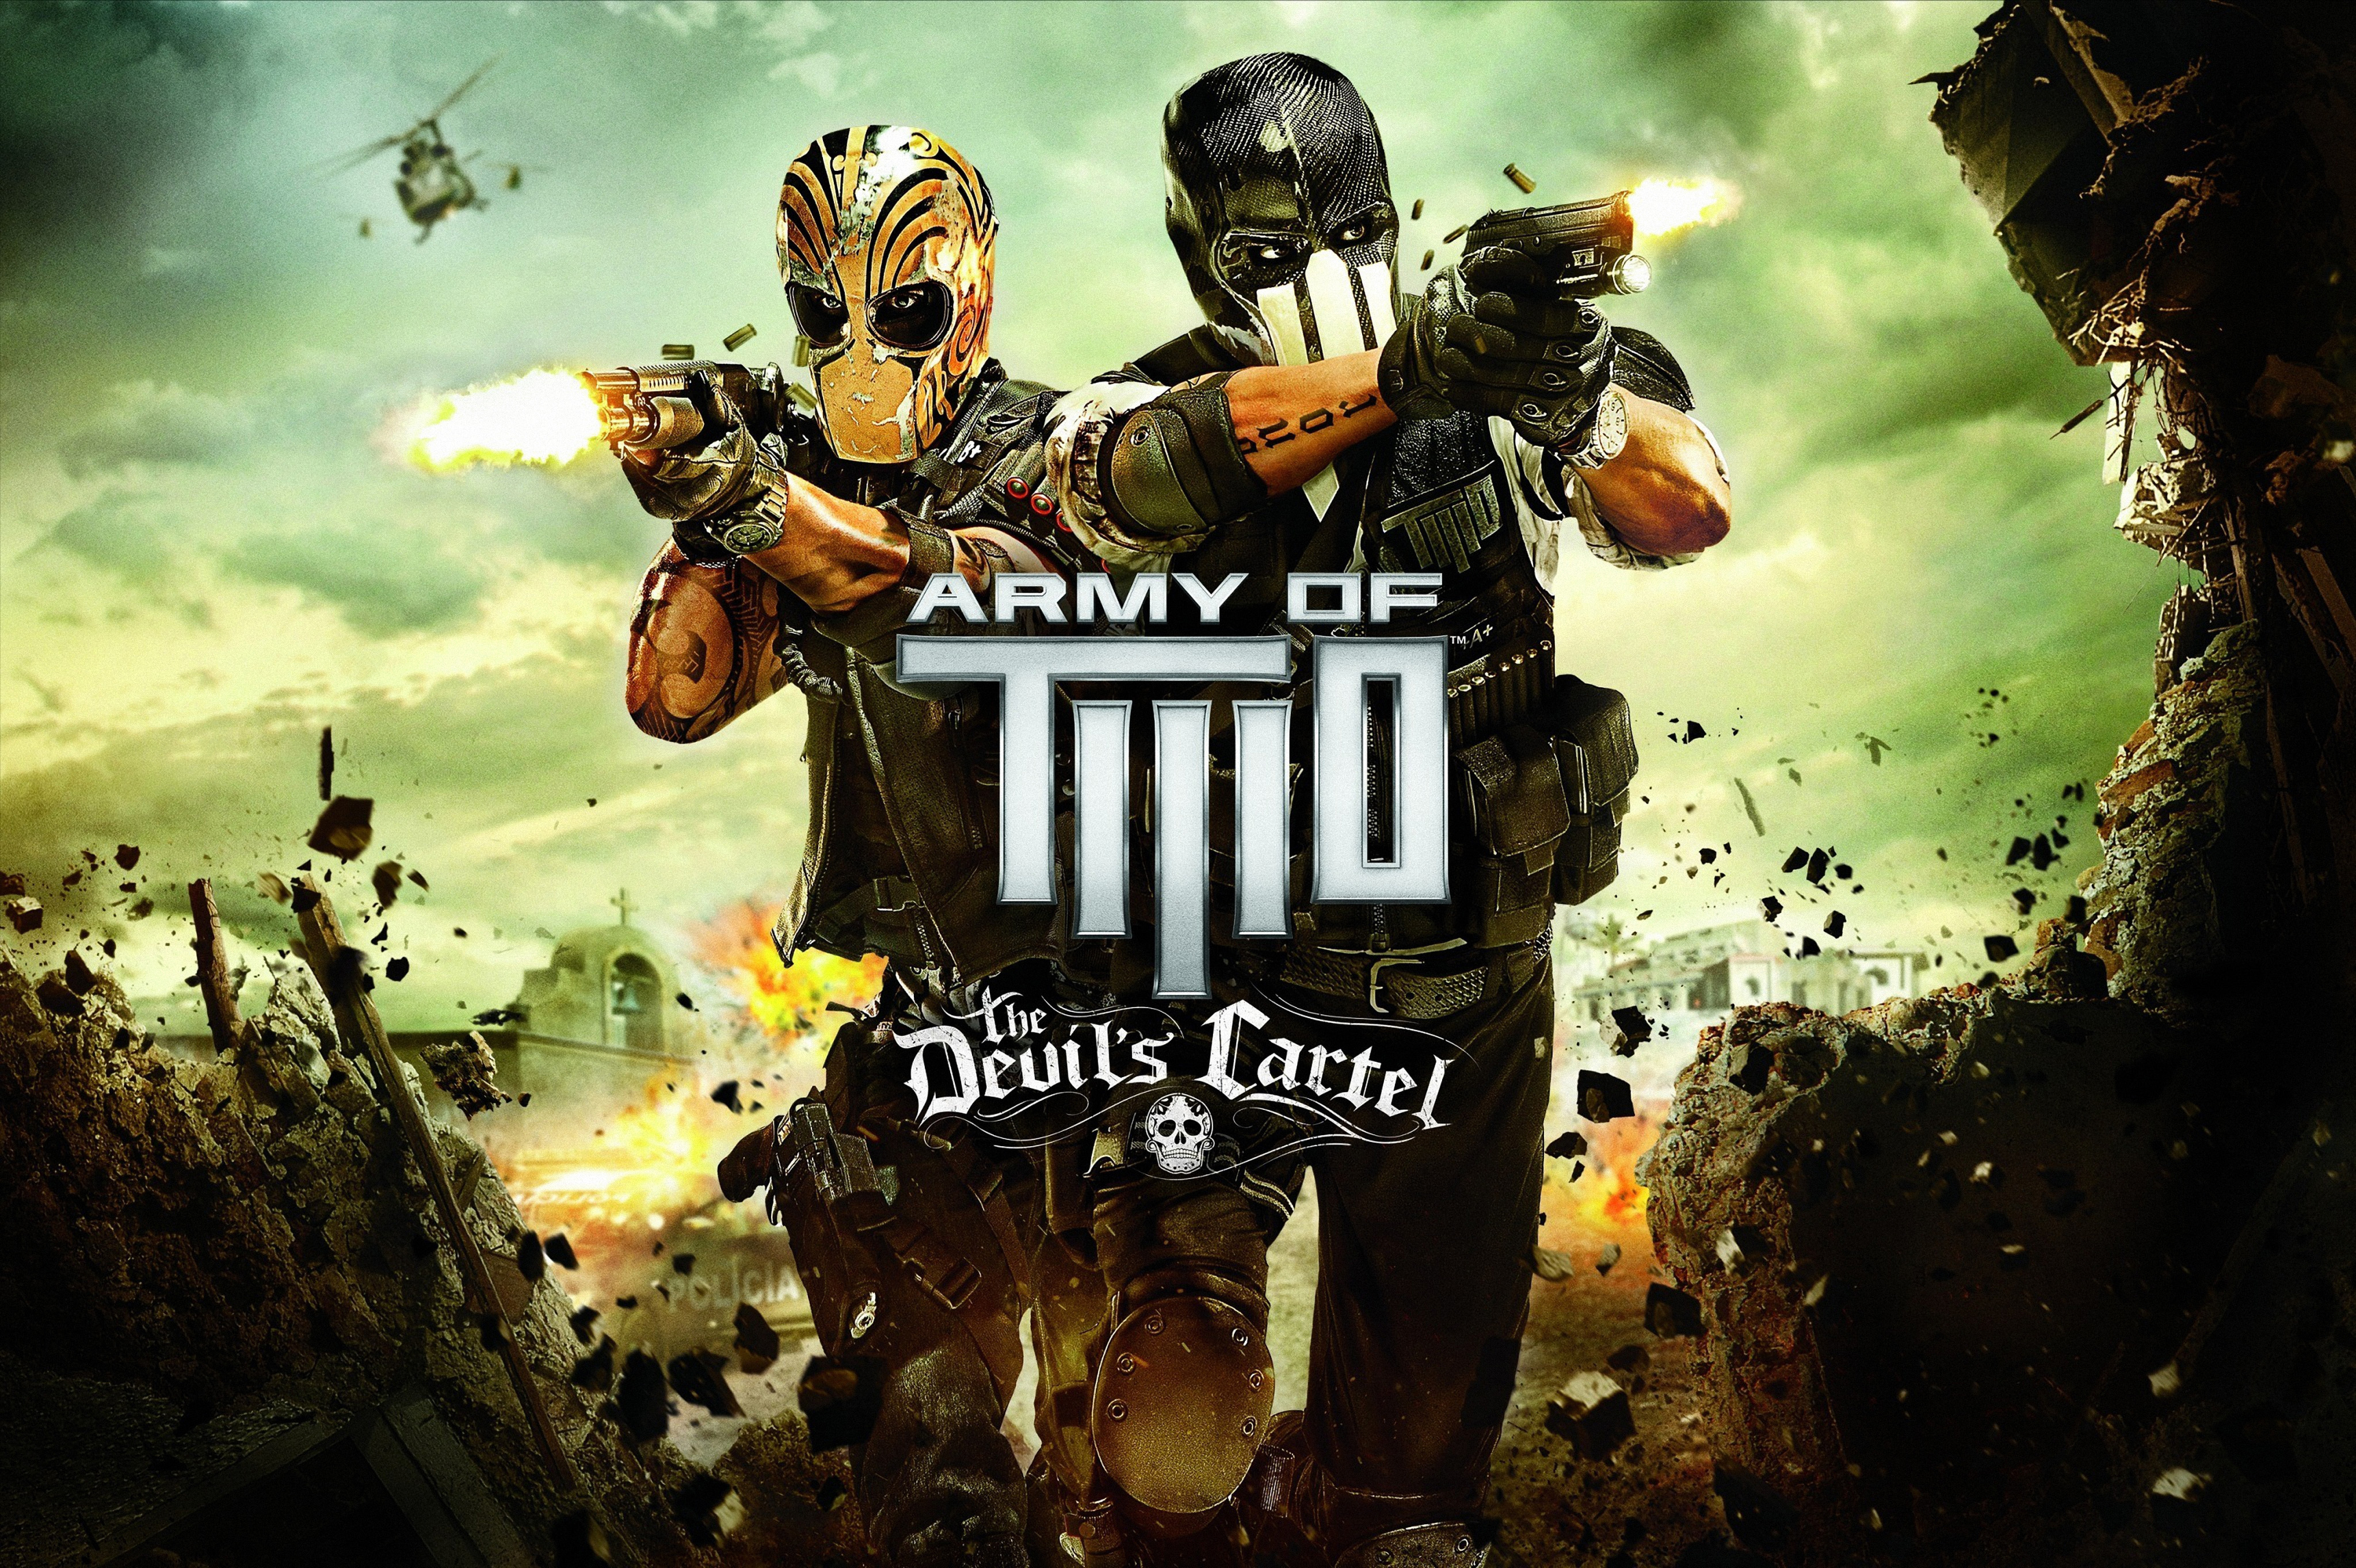 Army of Two: The Devil's Cartel, Альфа, Браво, Мексика обои скачать